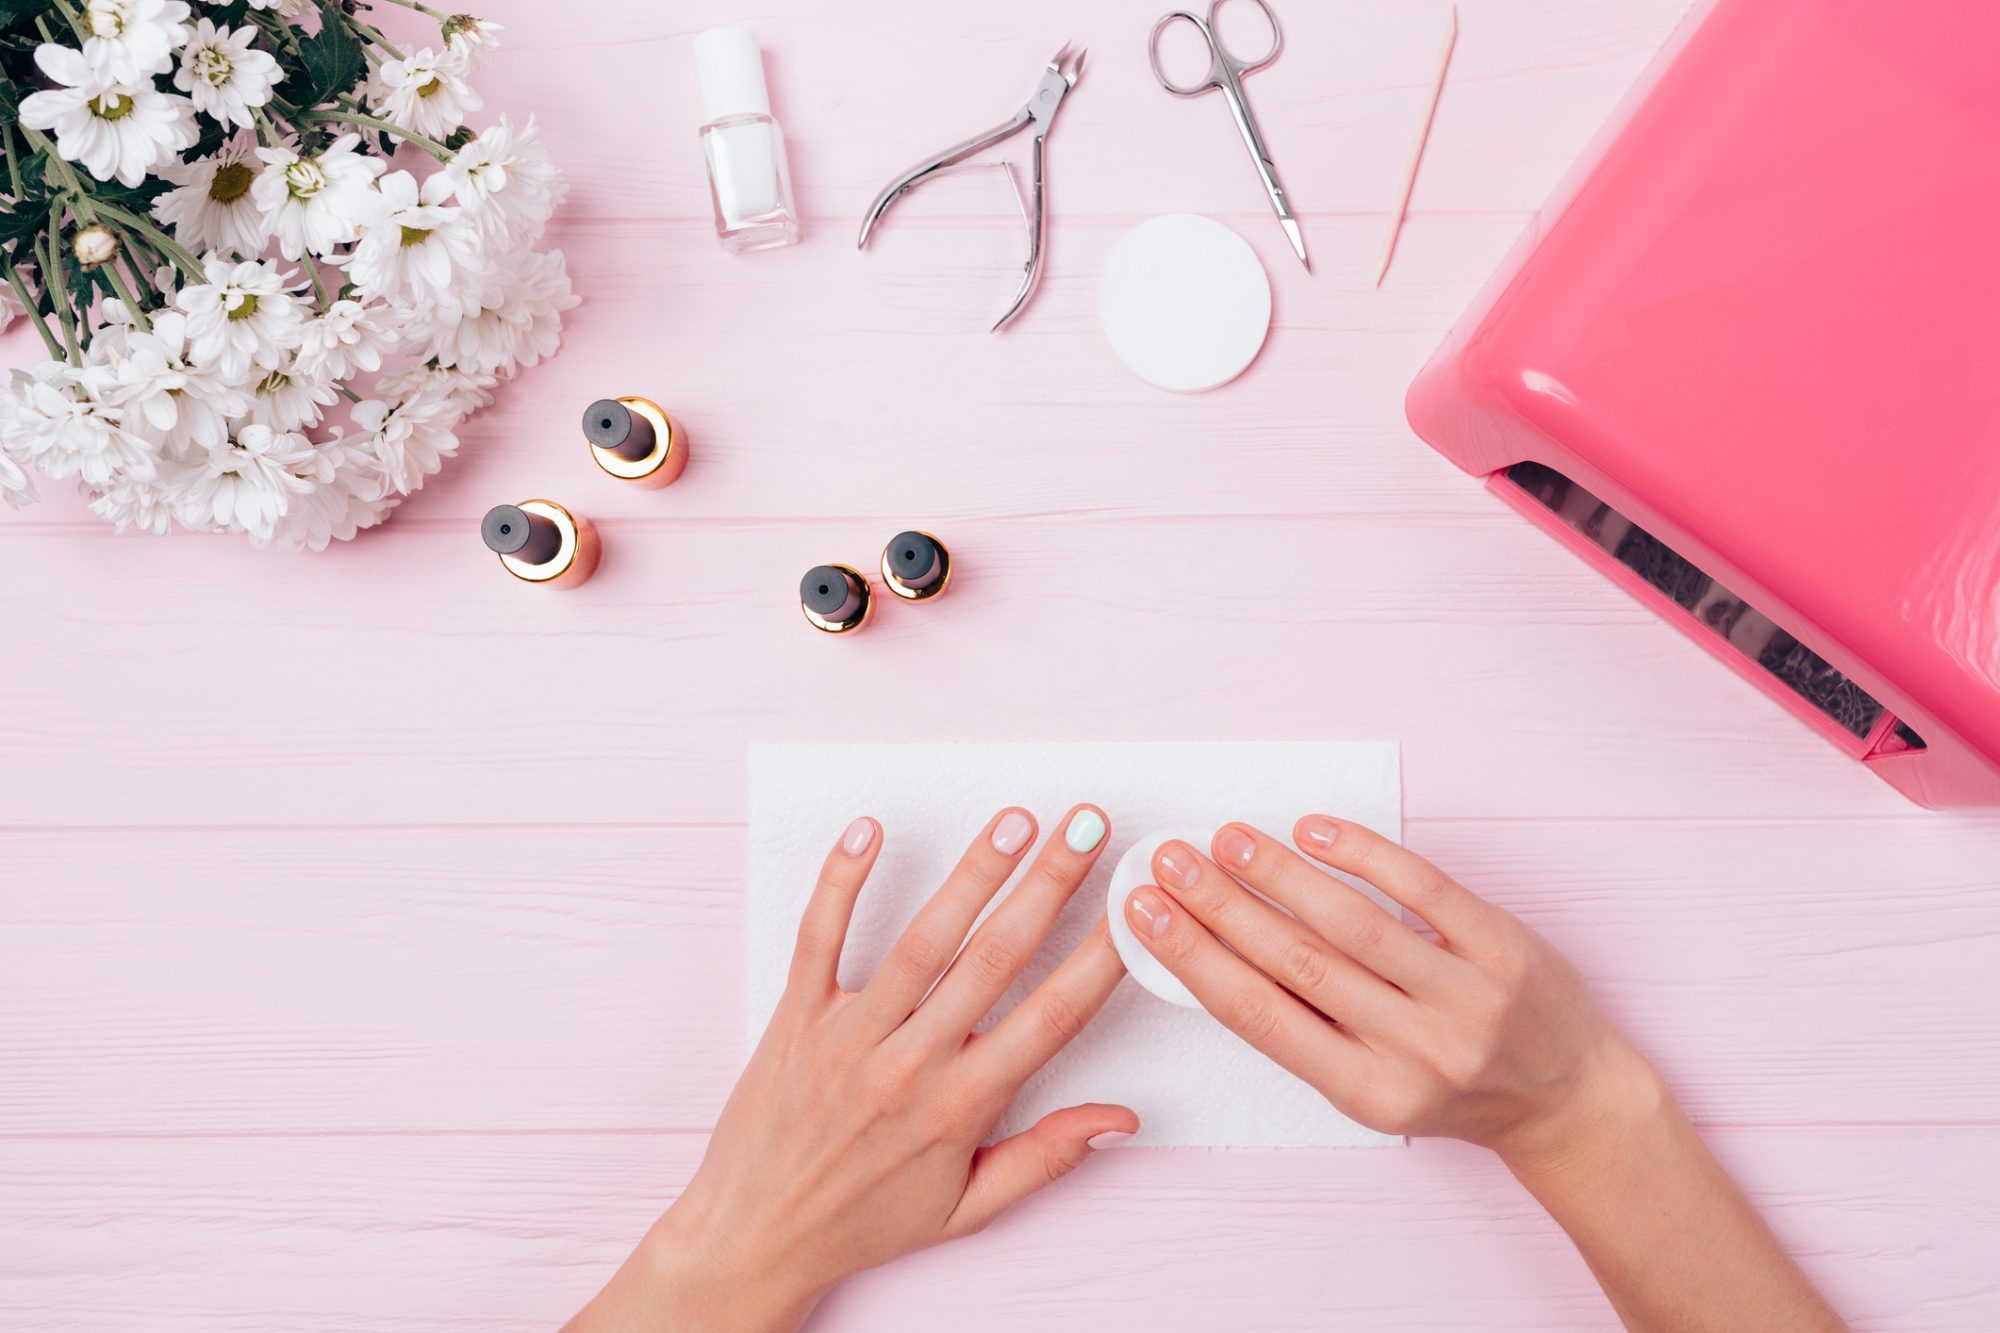 How To Remove Gel Nail Polish At Home—Without Ruining Your Nails